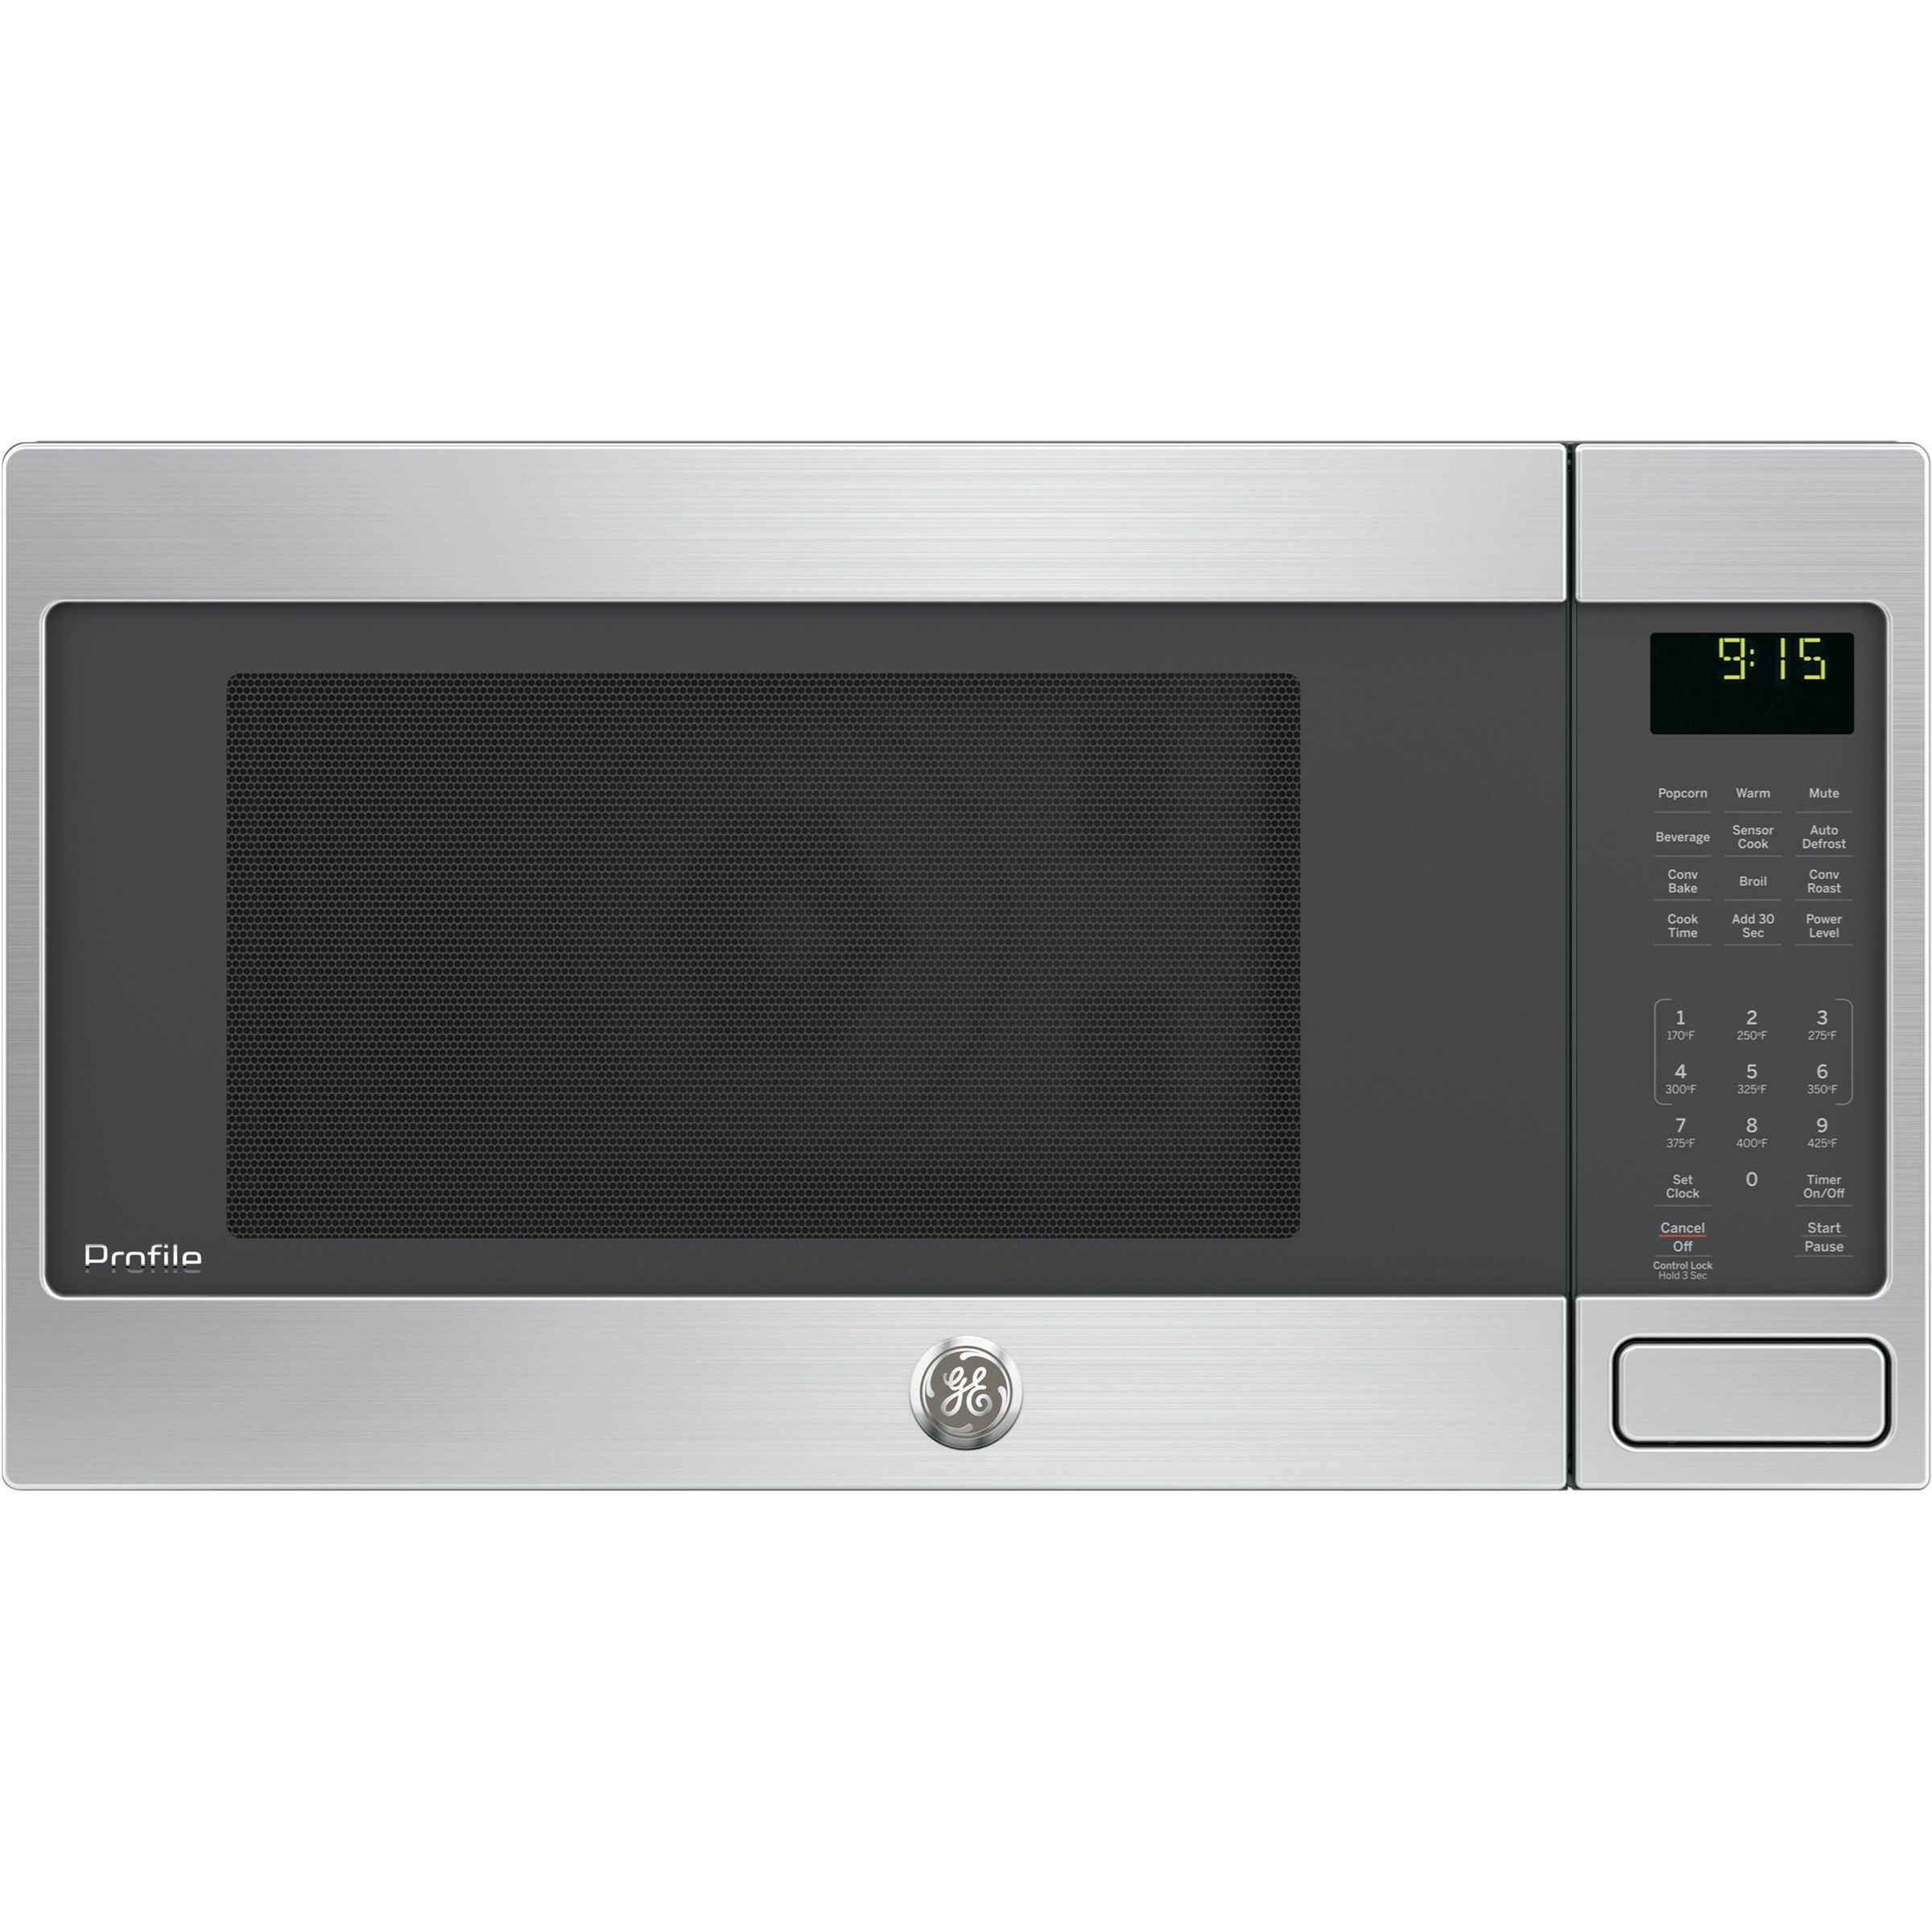 GE Microwaves Profile™1.5 Cu. Ft. Countertop Microwave by GE Appliances at Furniture and ApplianceMart